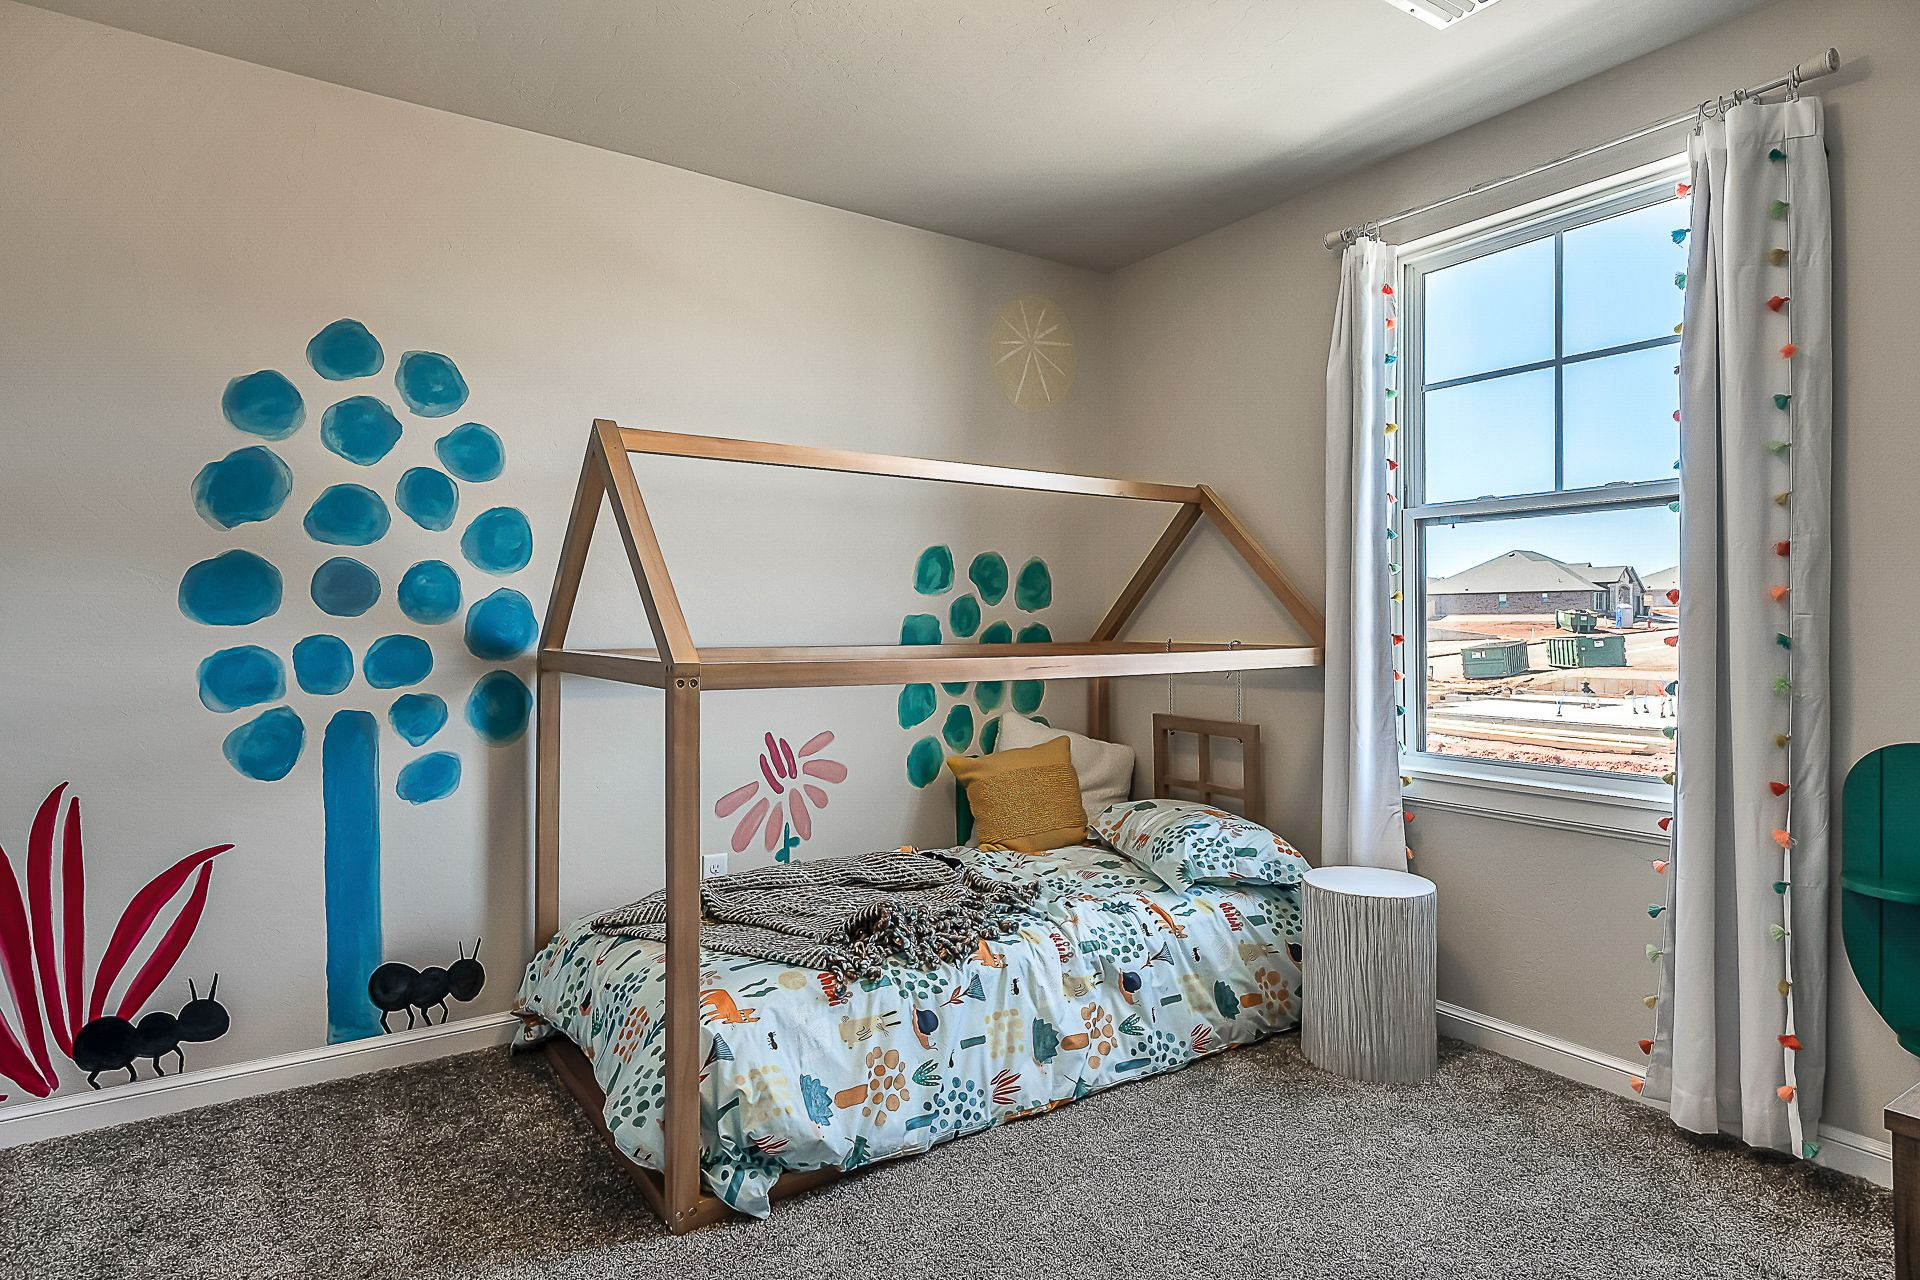 Bedroom featured in the Prescott By Ideal Homes in Oklahoma City, OK